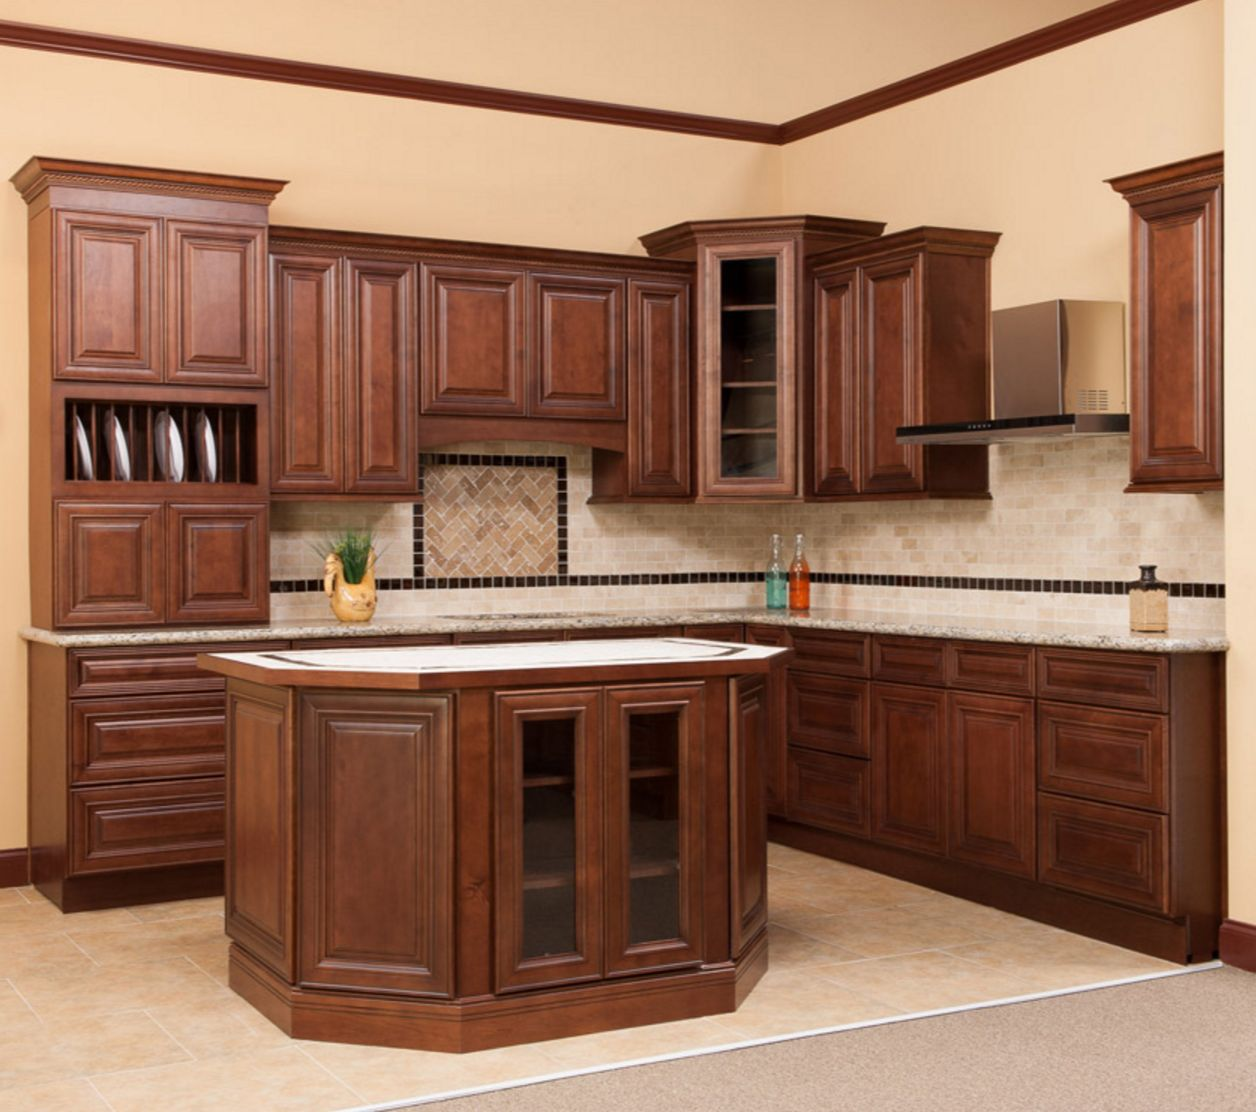 Pin by Falfas Cabinets & Stone on Traditional Kitchens ...